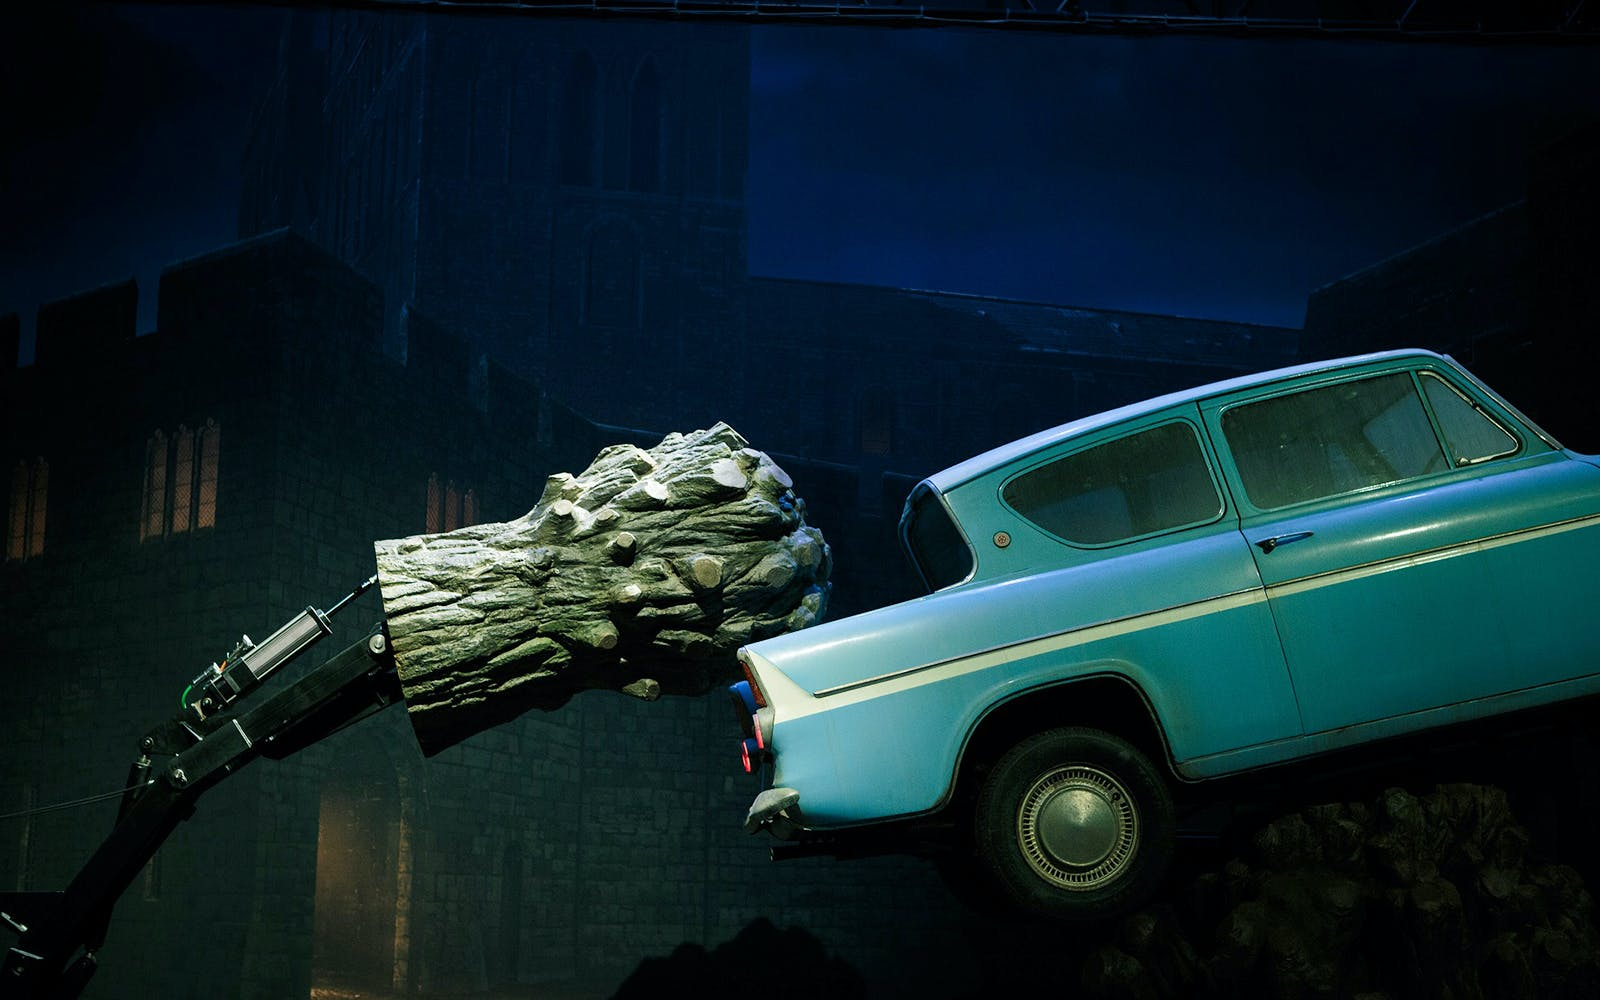 warner bros. studio tour with return transfers-5